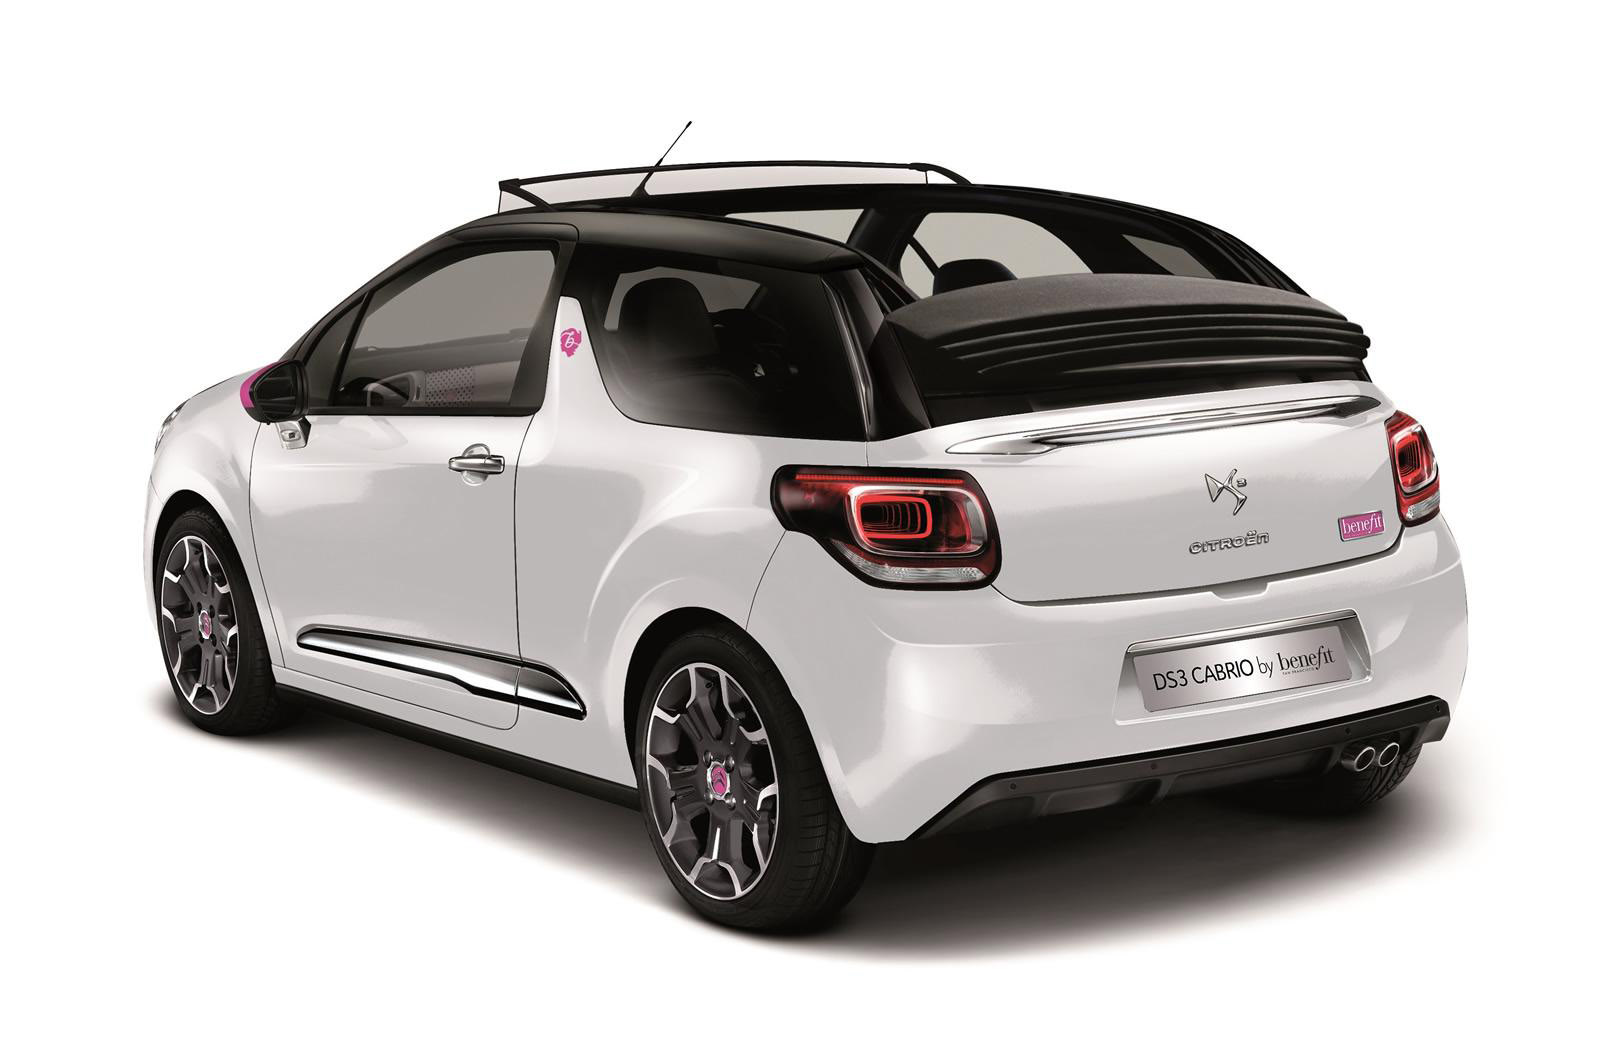 Citroen Ds3 Cabrio Dstyle By Benefit Special Edition